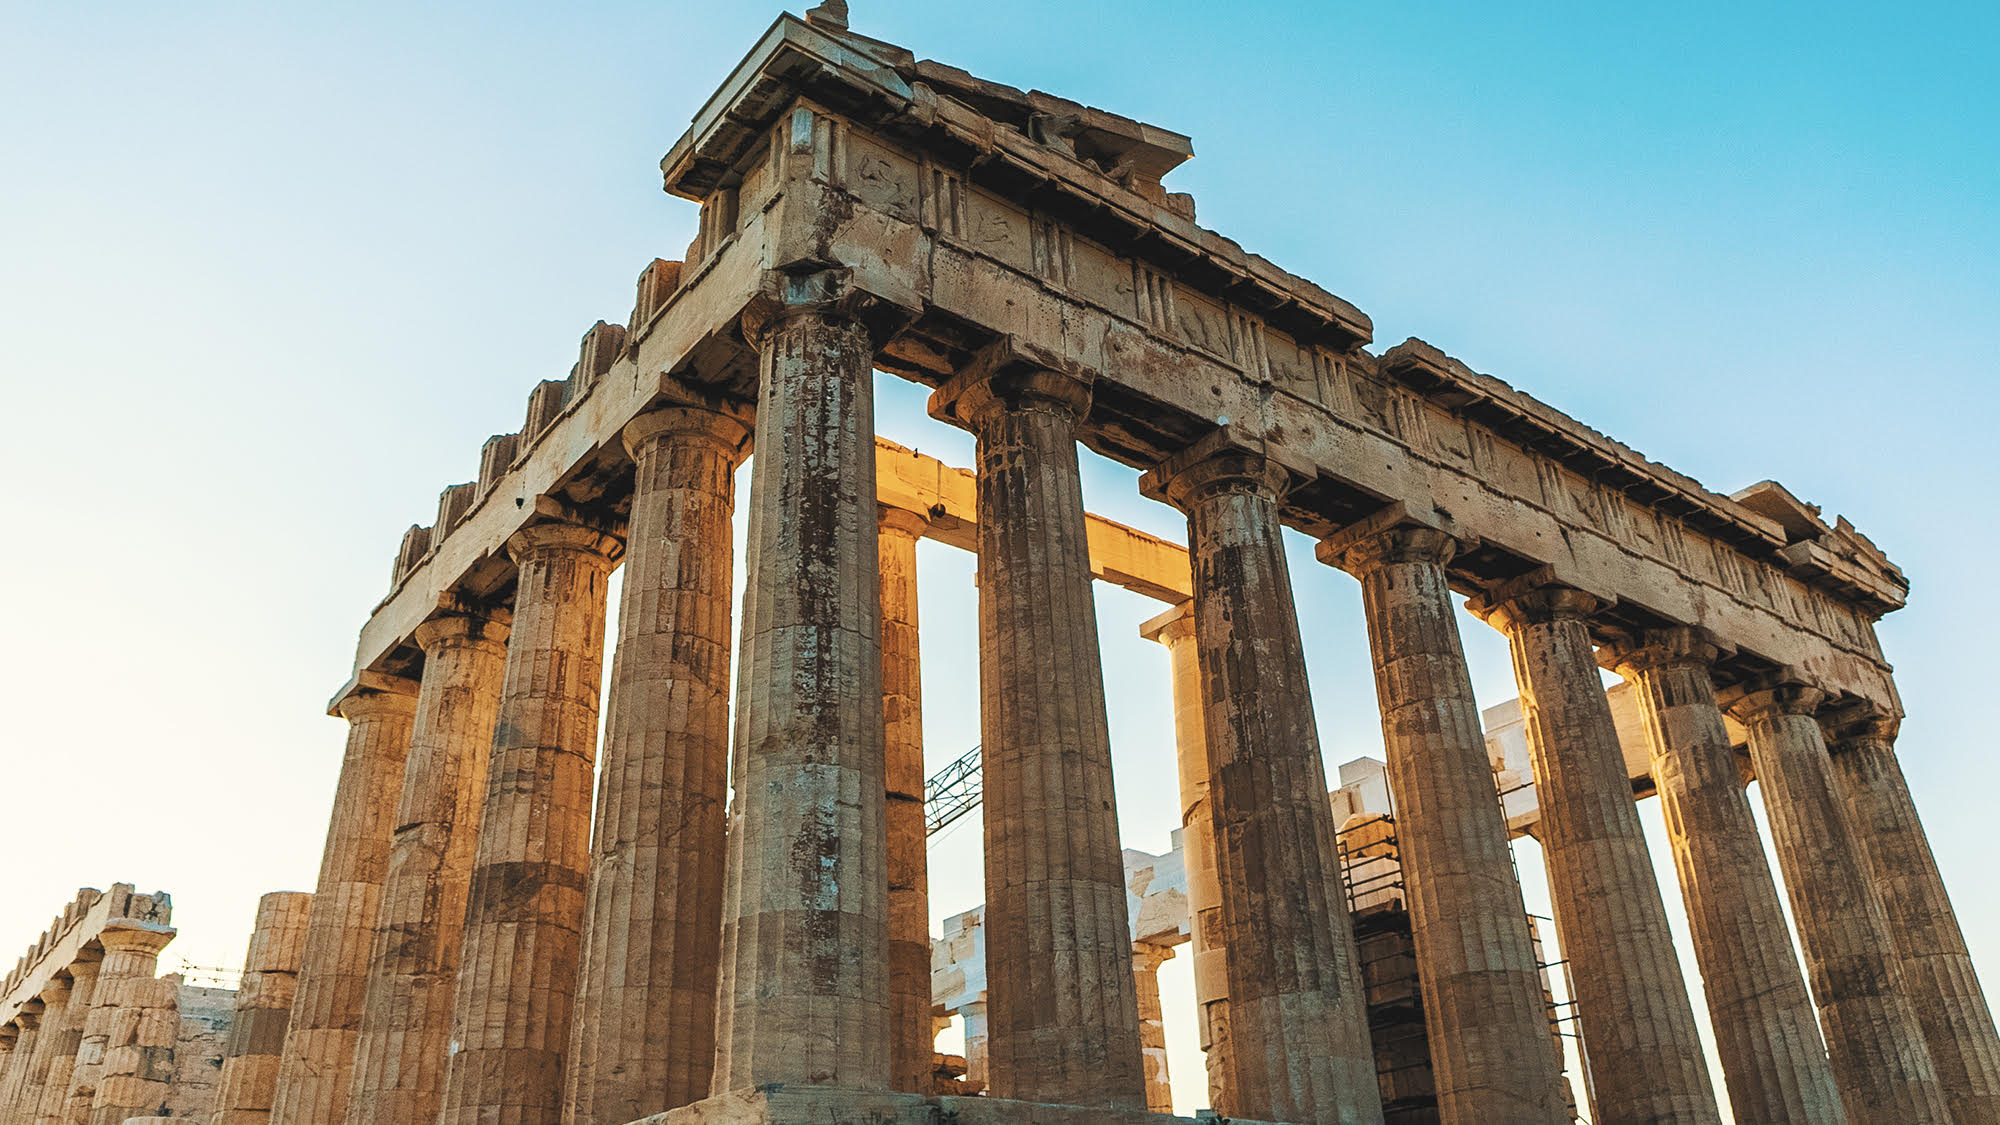 Image of the Parthenon in Athens, Greece with sun shining in background